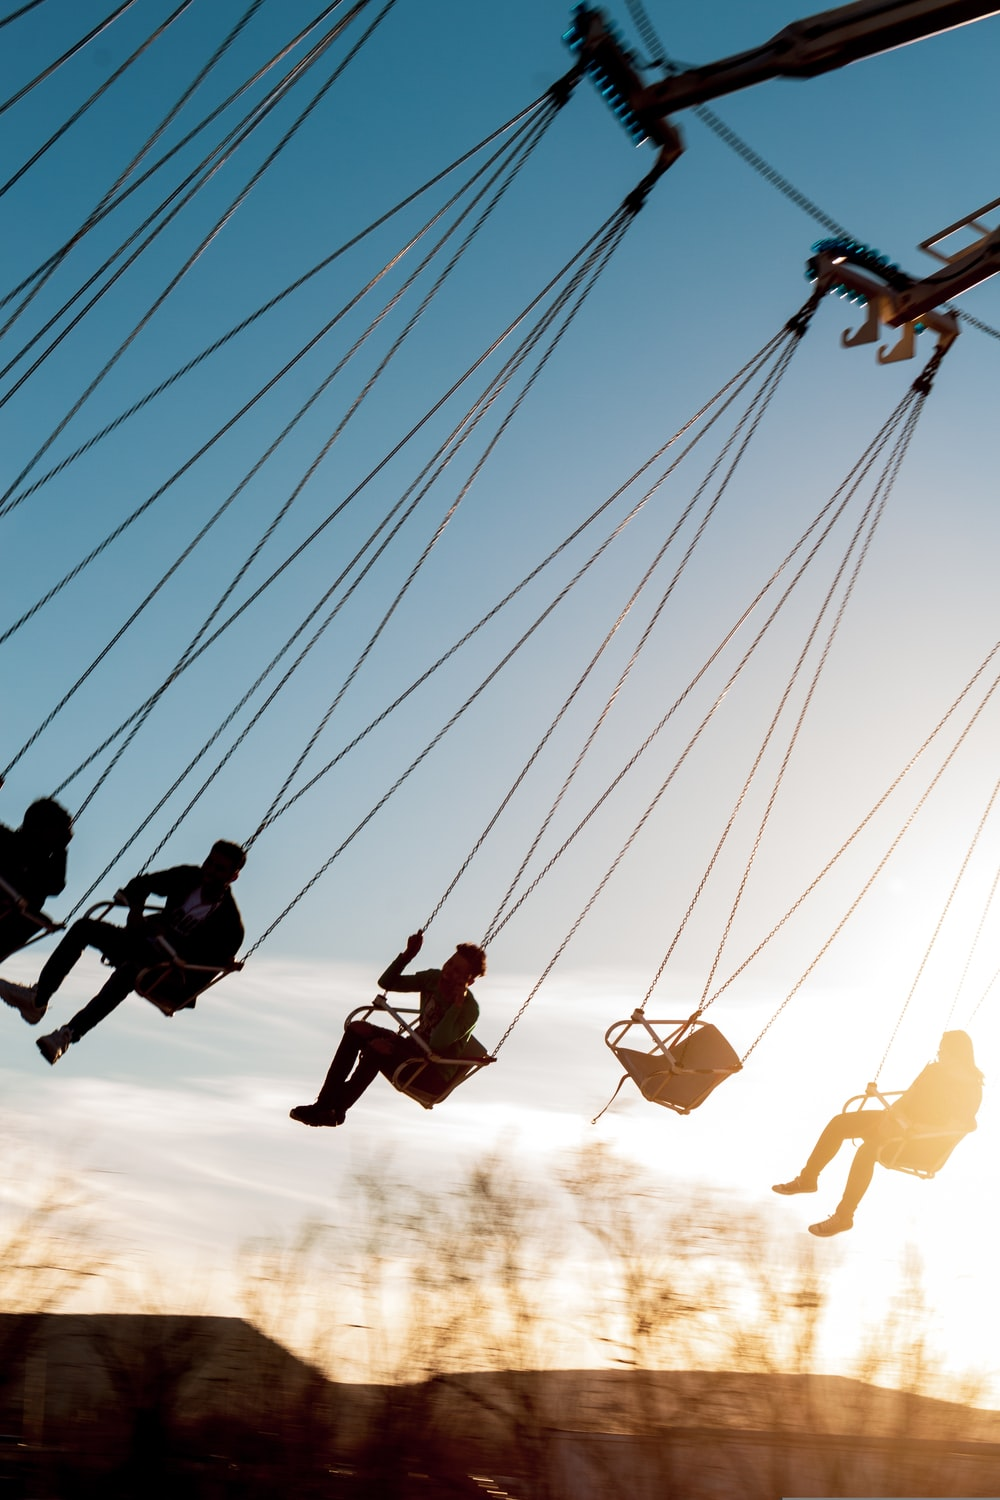 silhouette of people riding swing during daytime